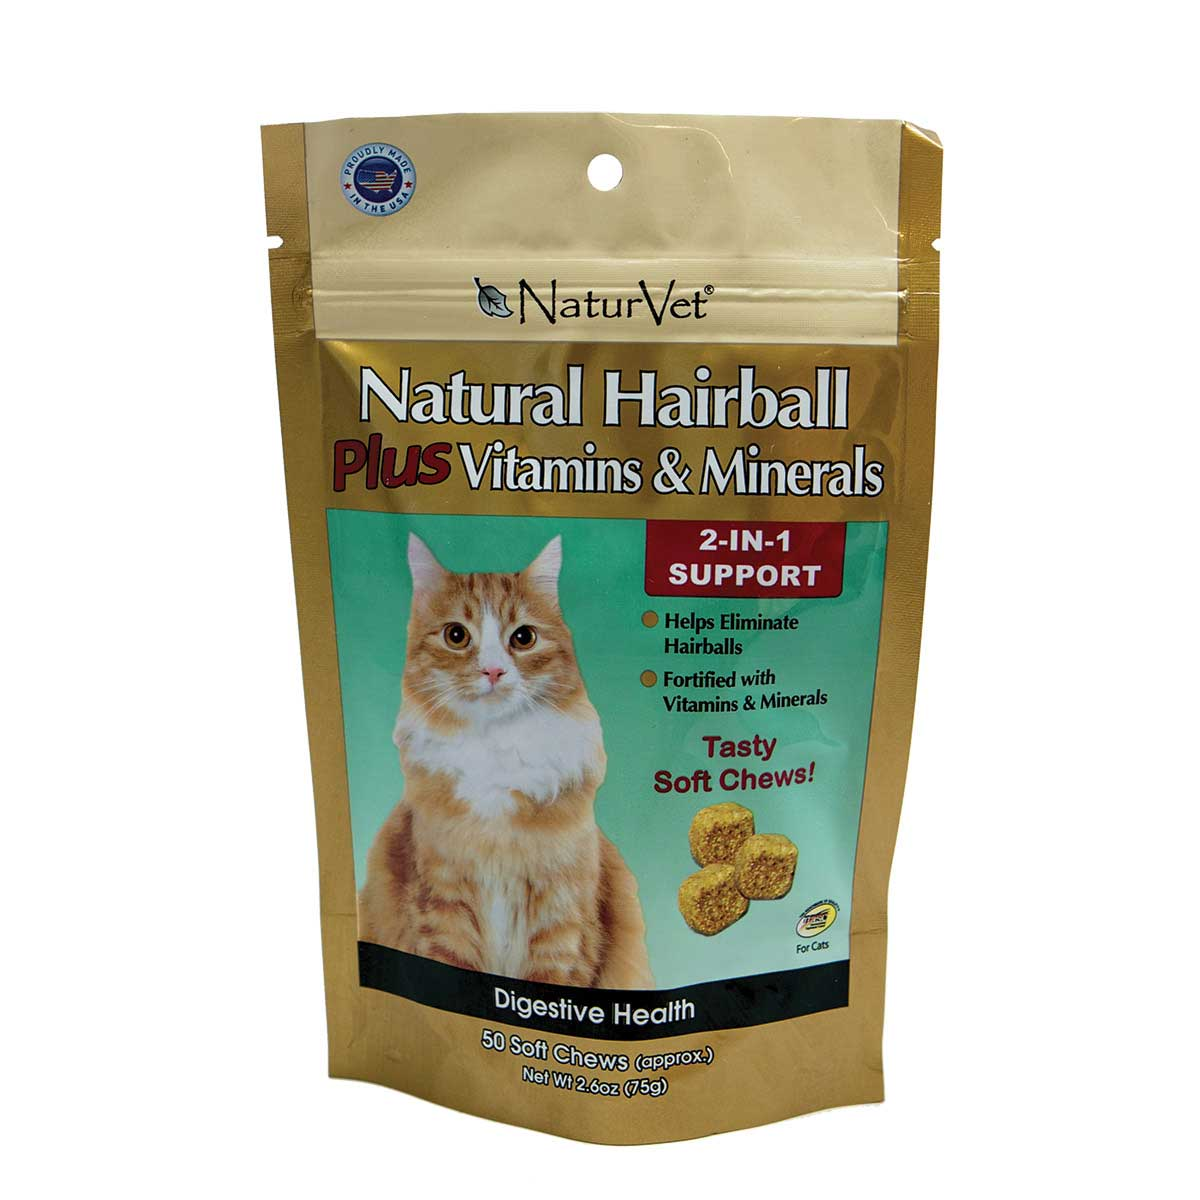 NaturVet Natural Hairball Plus Vitamins & Minerals Soft Chews for Cats - 50 Count